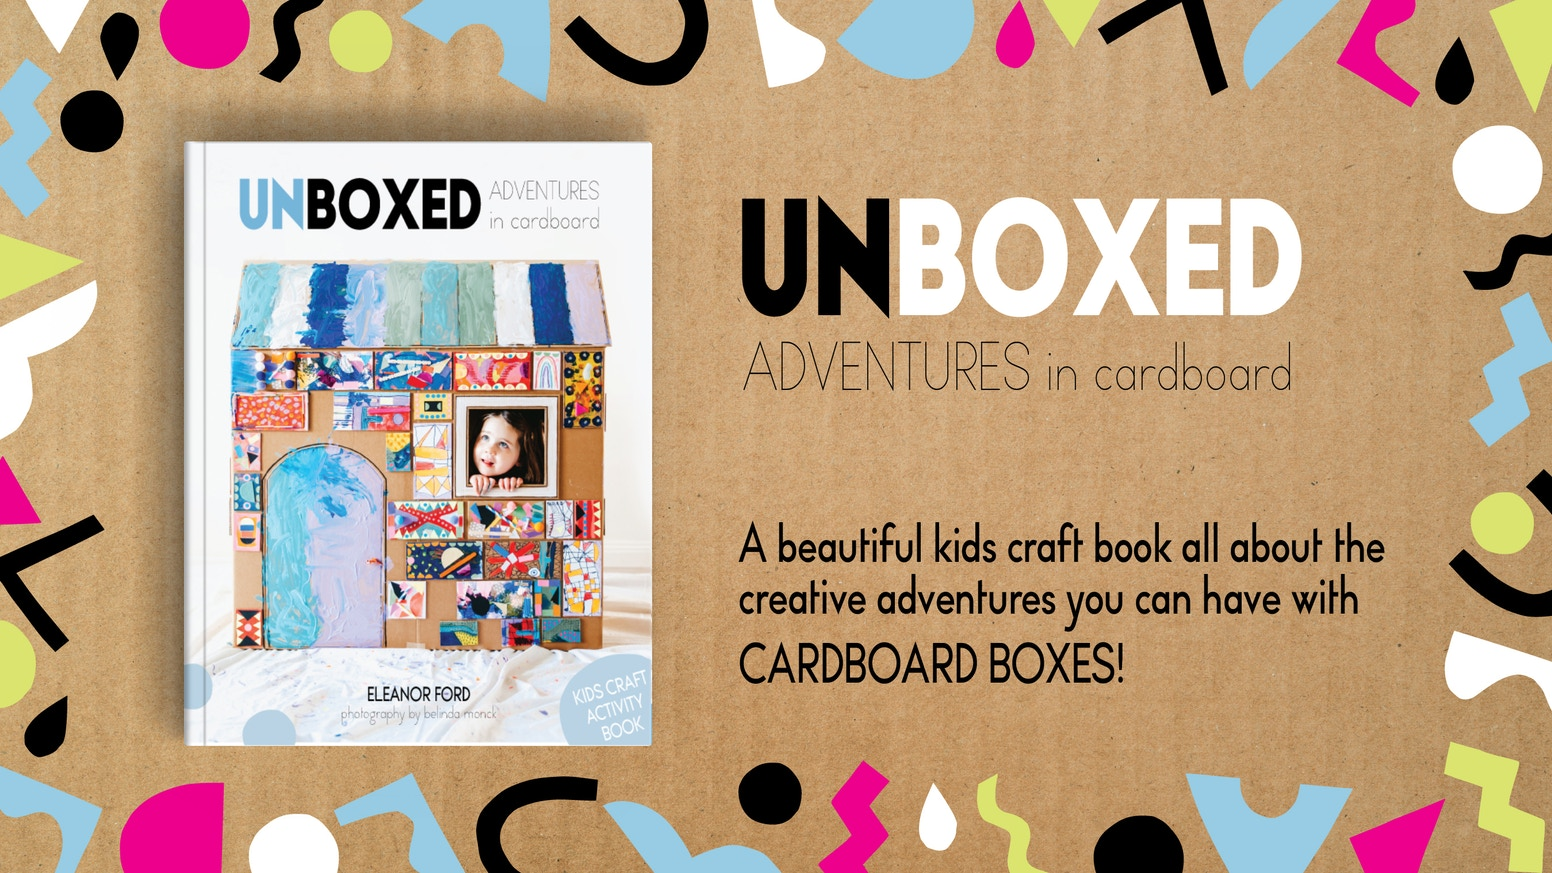 Ignite your child's imagination and creativity with our beautiful craft book. Now available to pre-order through our website.